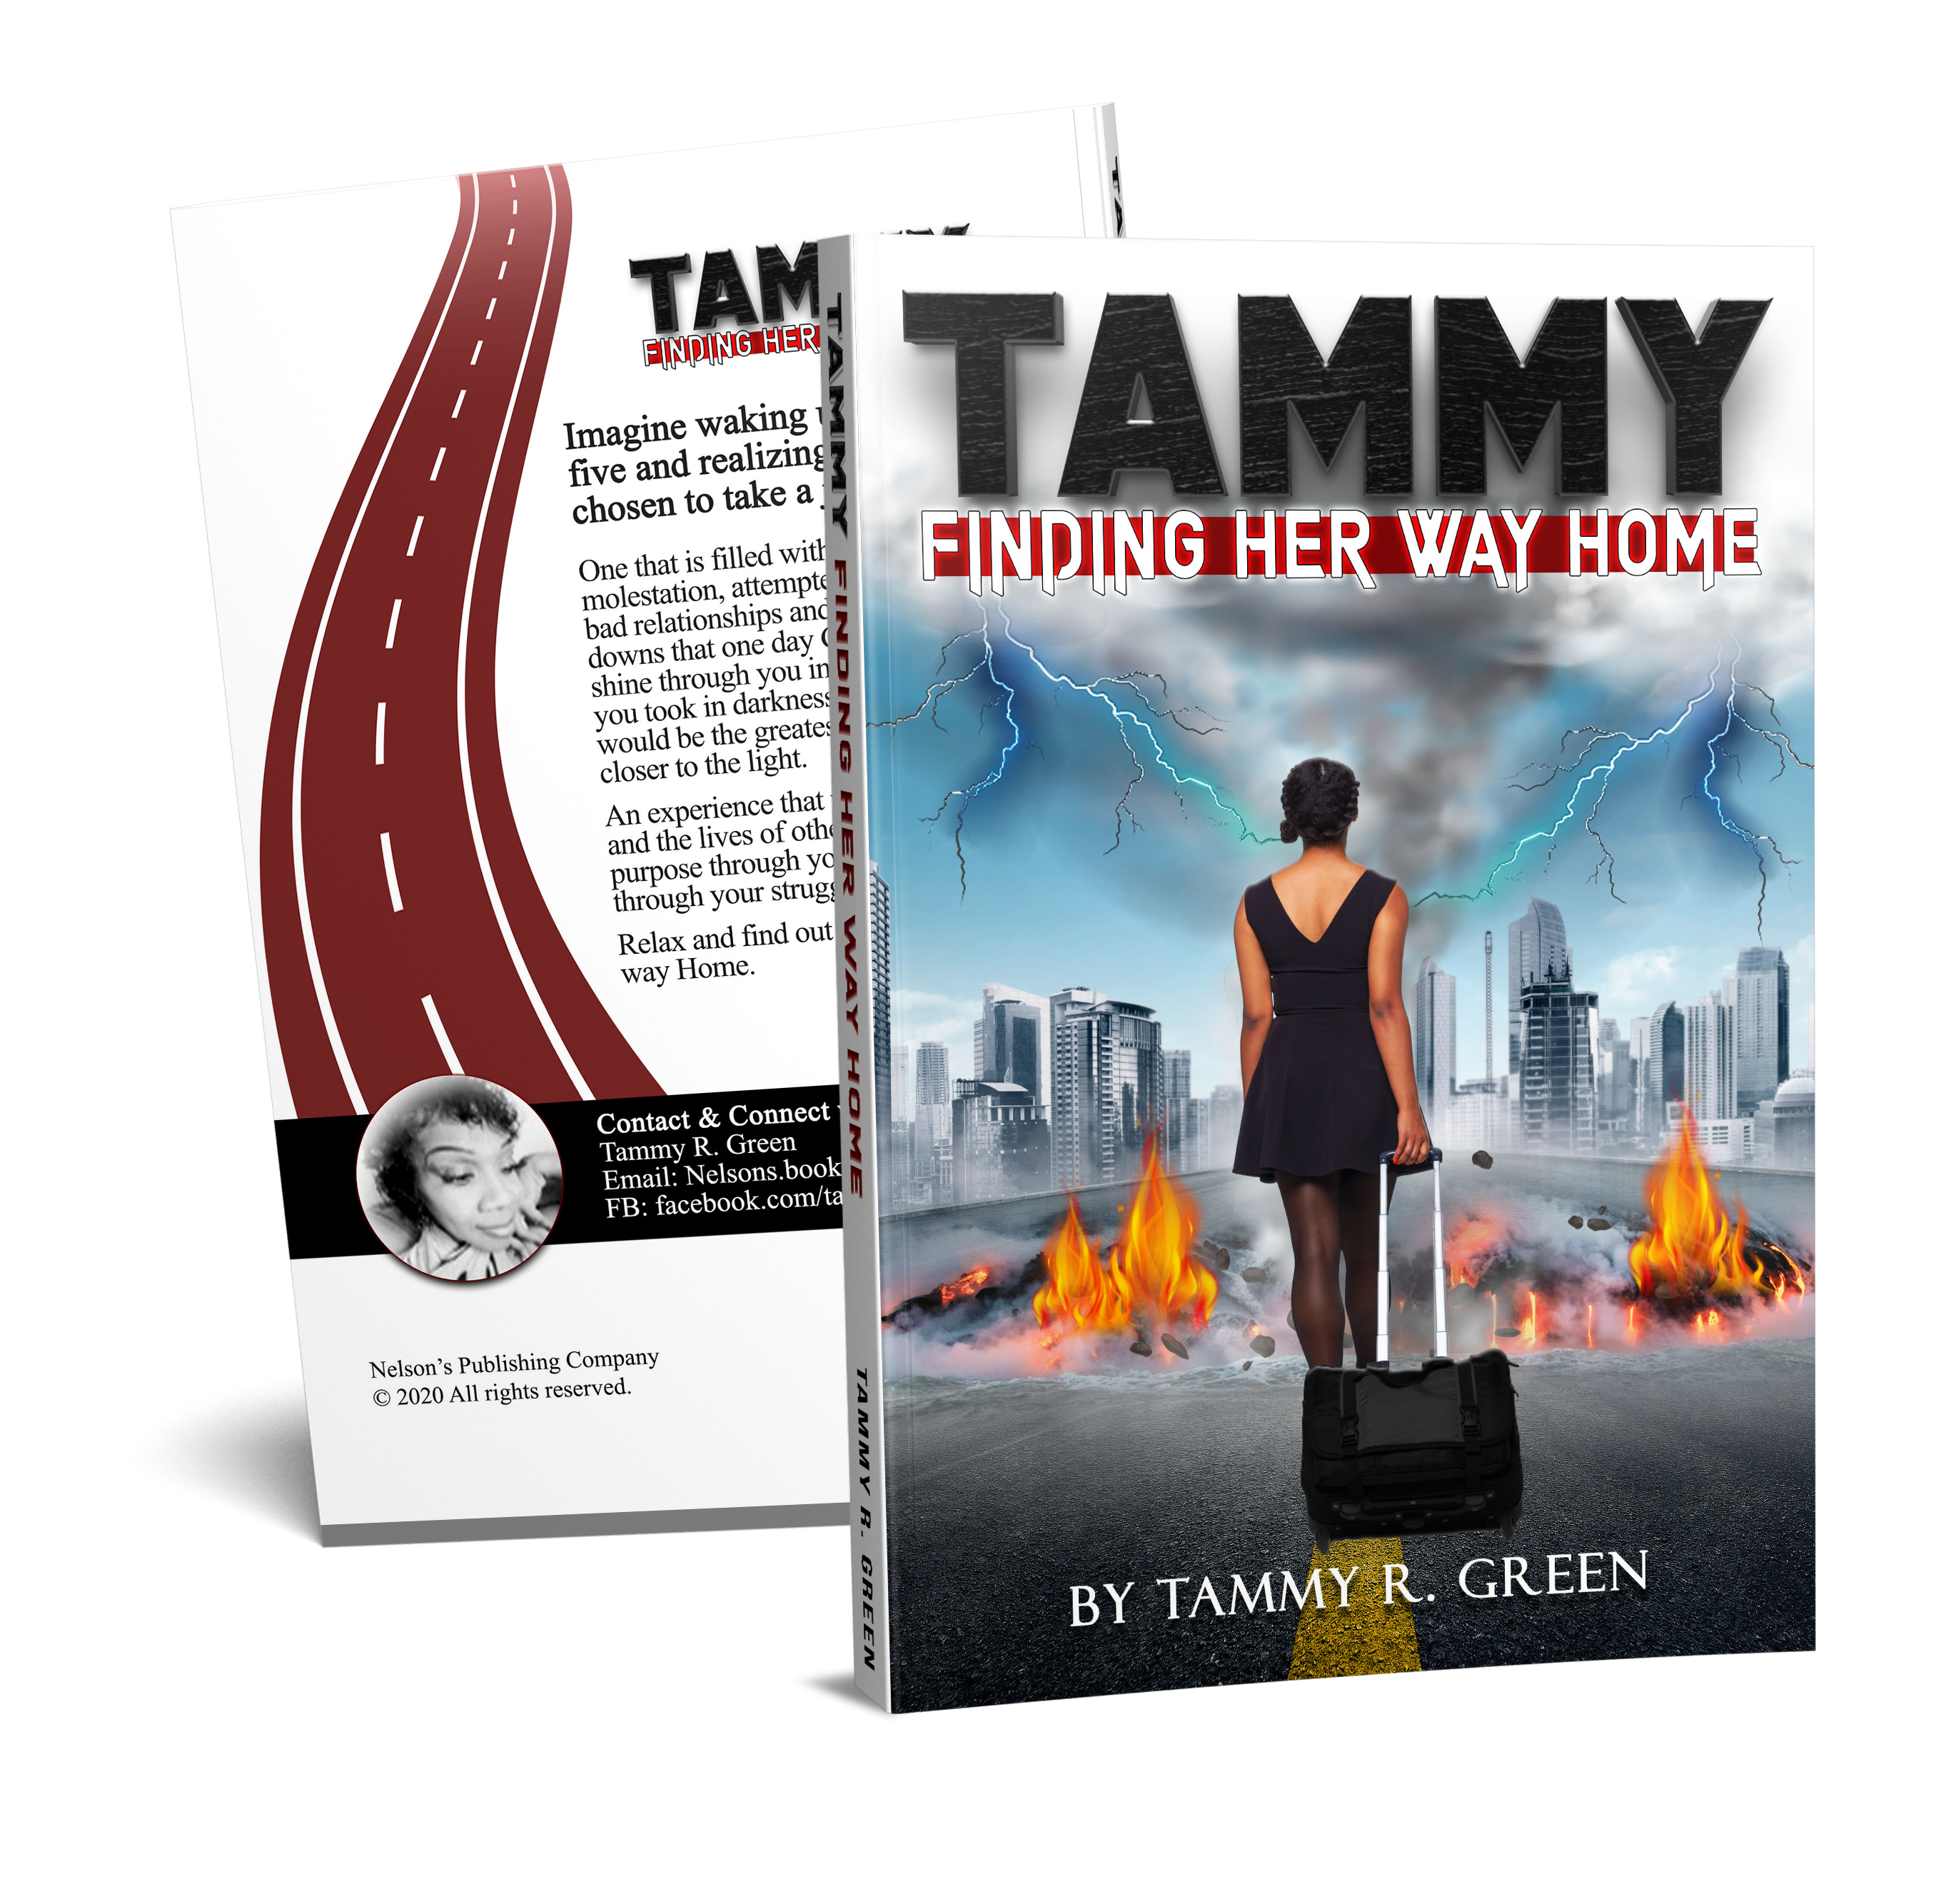 Tammy Finding Her Way Home Book Mockup Front and Back